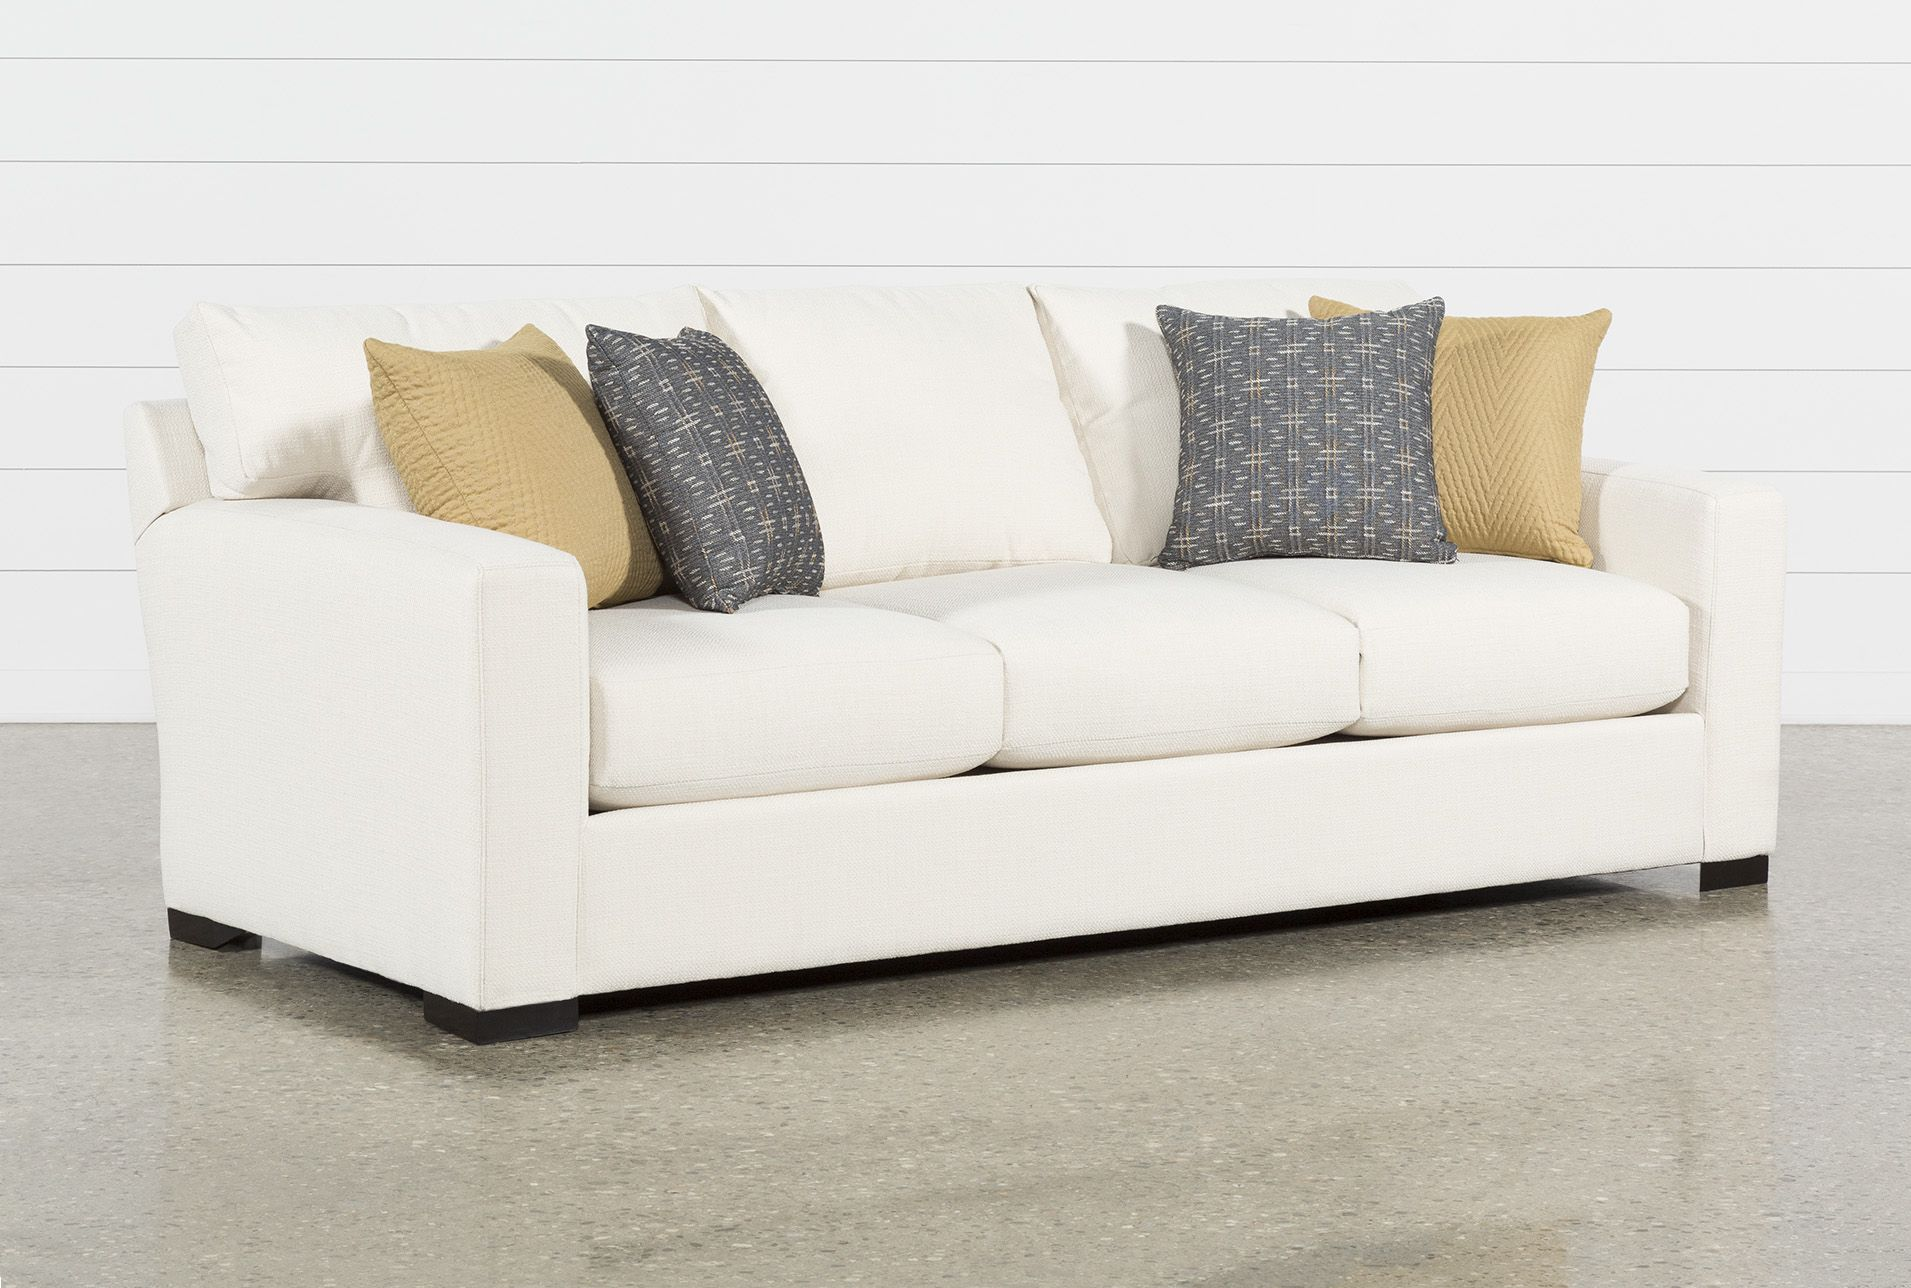 Mercer Foam Ii Sofa Beige 695 In 2020 Sofa Sofa Furniture